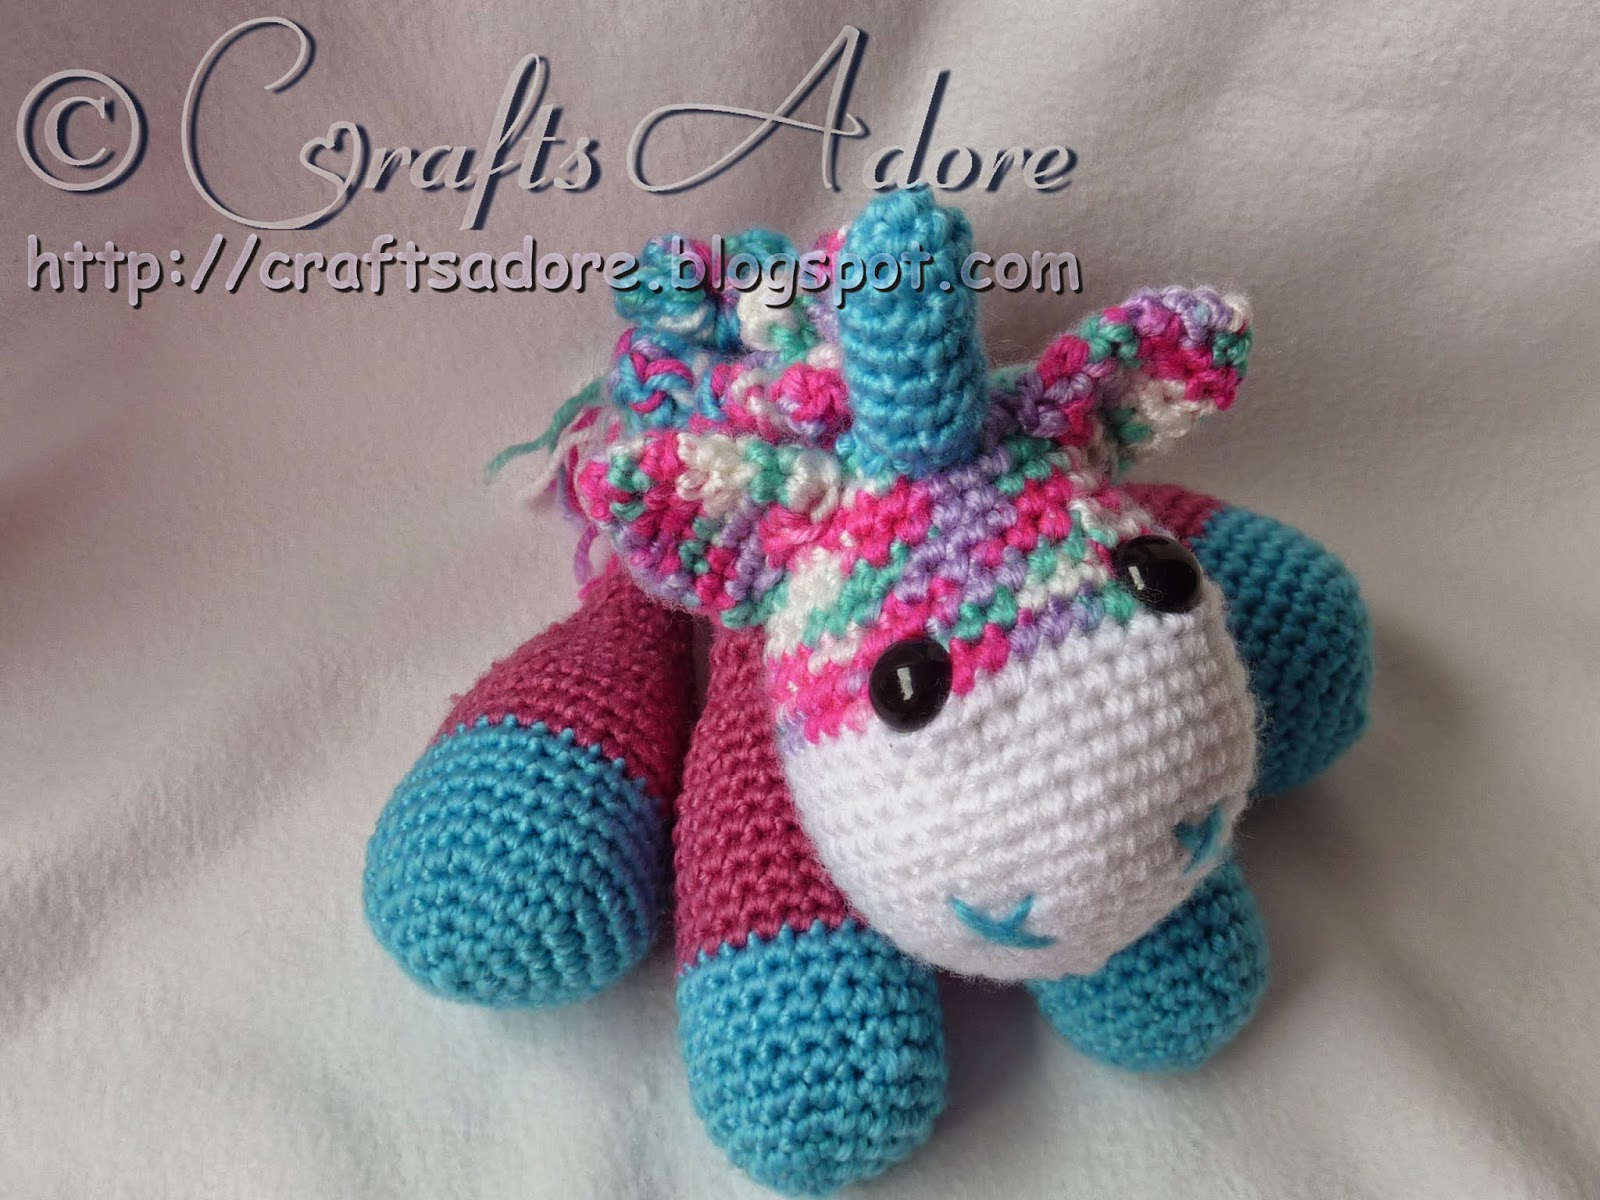 Adorable Lil' Baby Unicorn Crochet Amigurumi